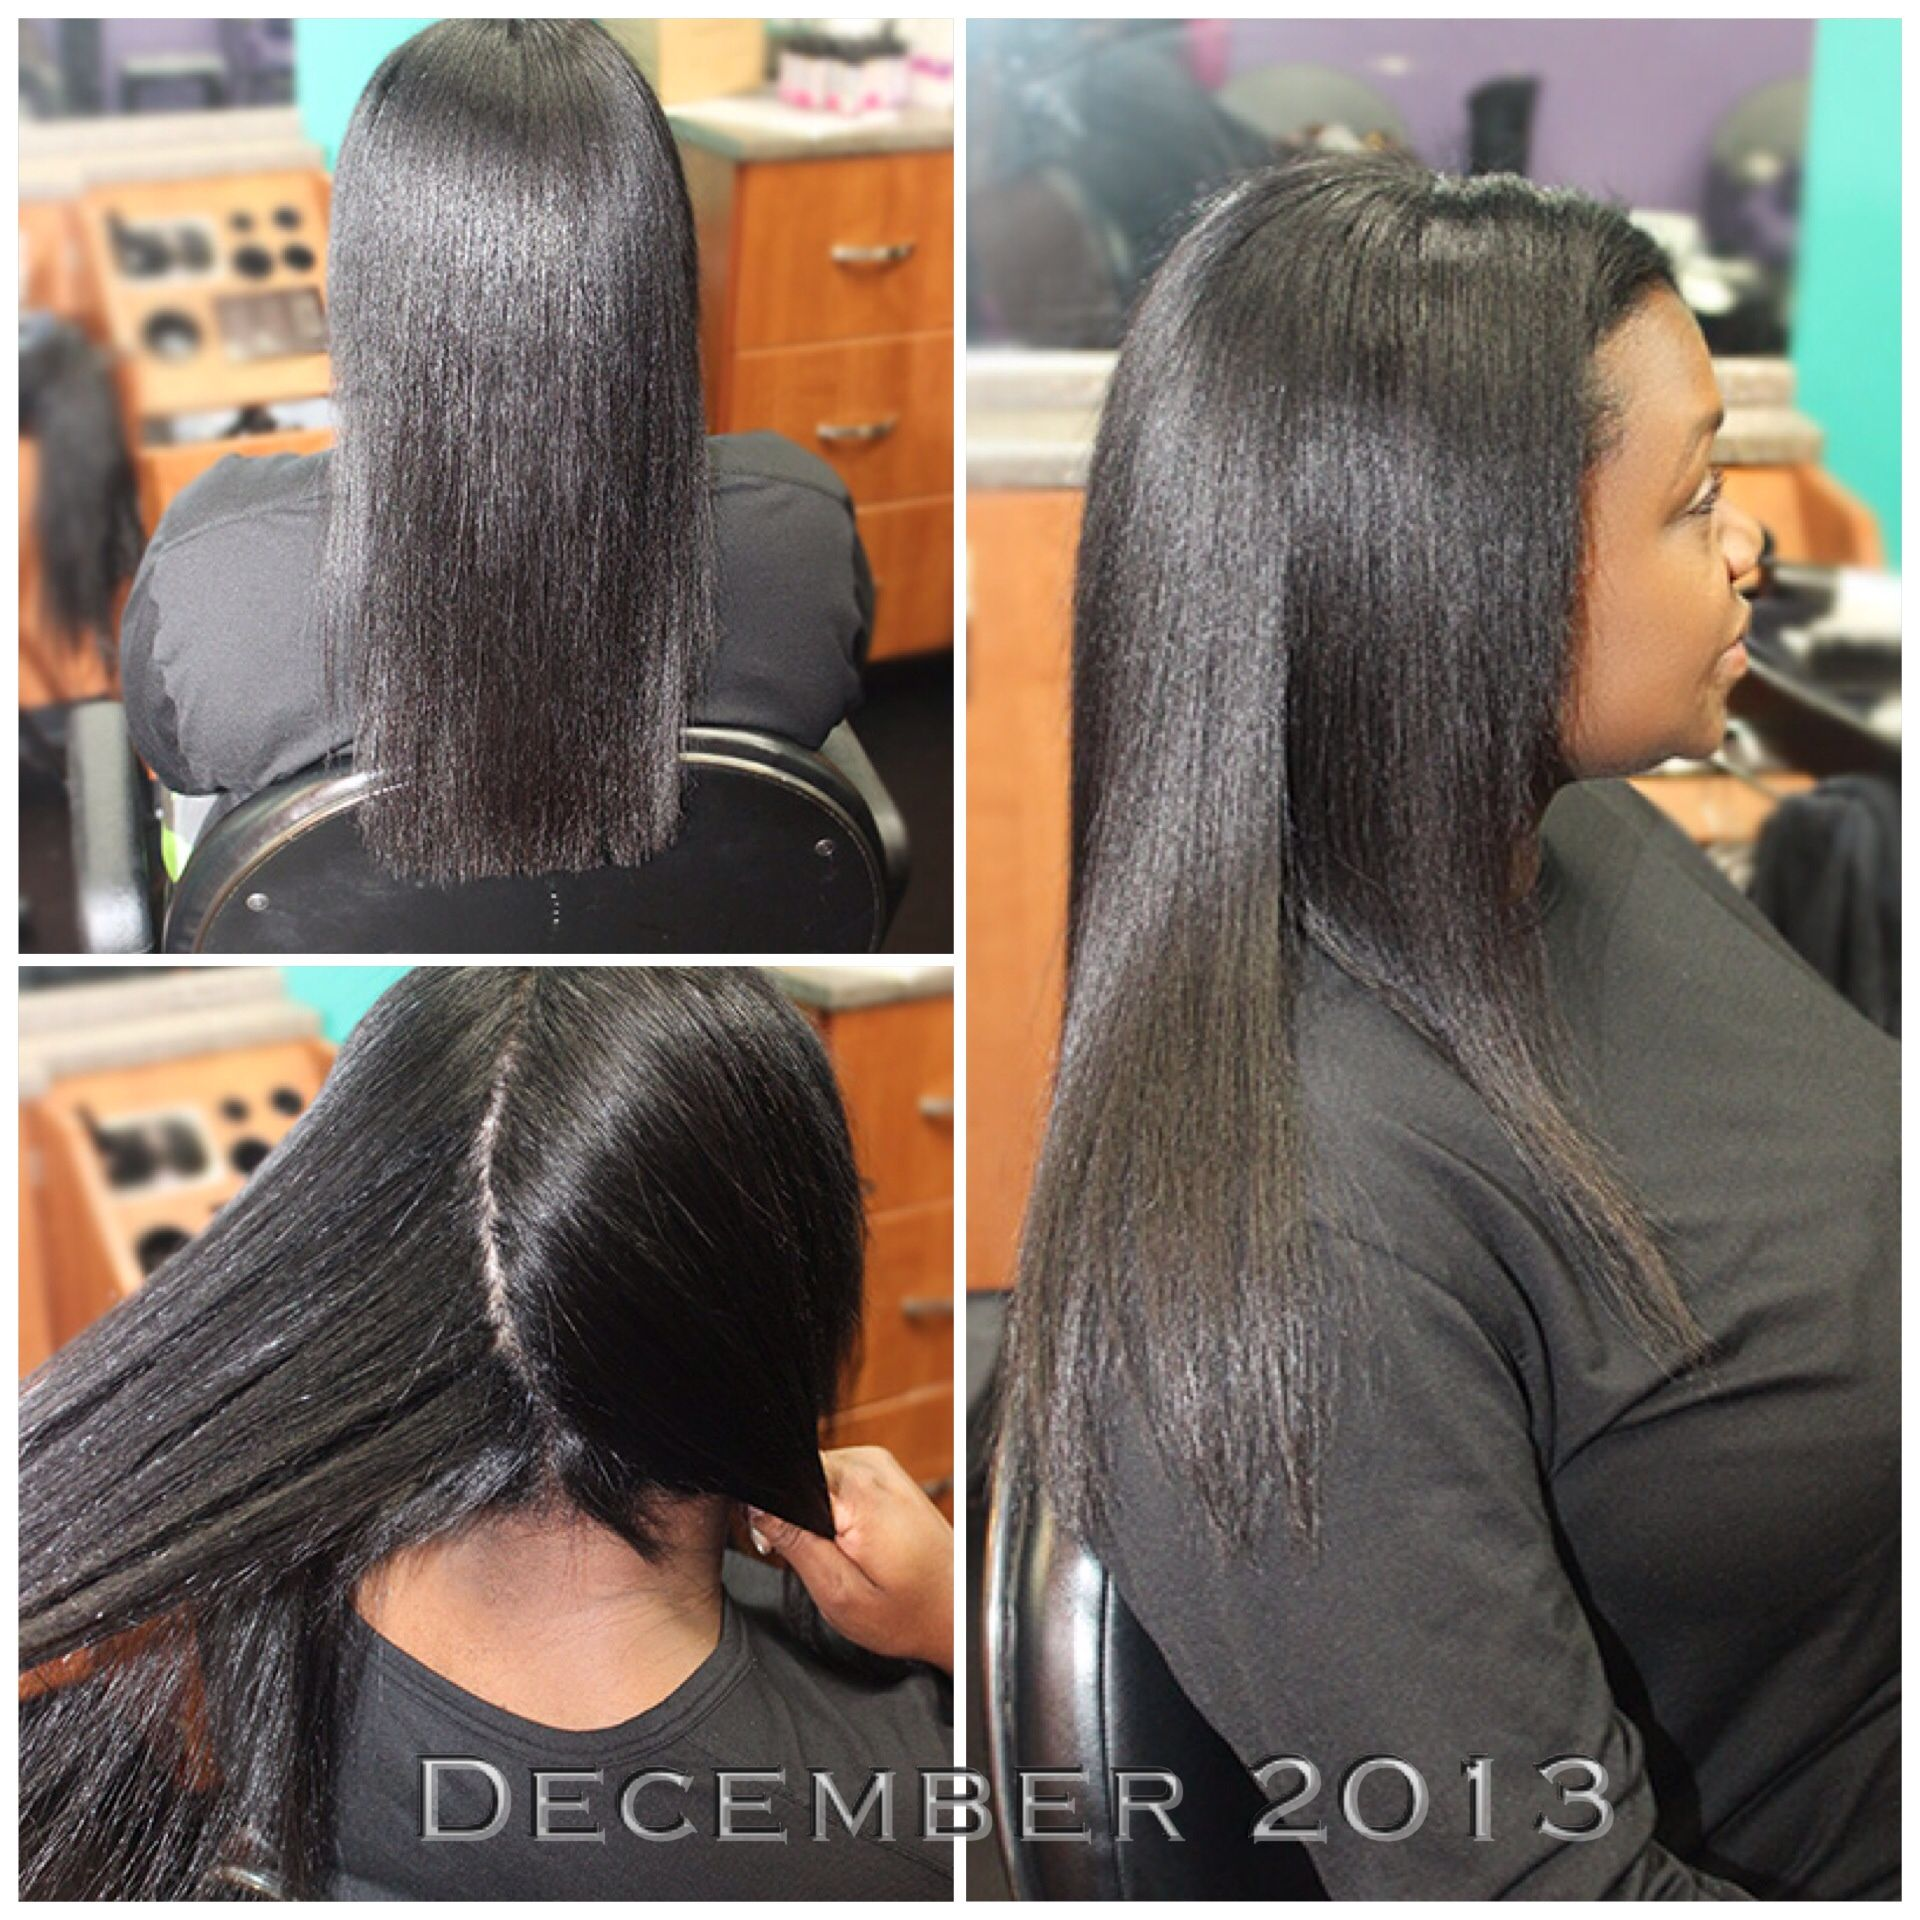 Sew in hair growth on Pinterest | Hair Growth, Sew Ins and Bra Straps